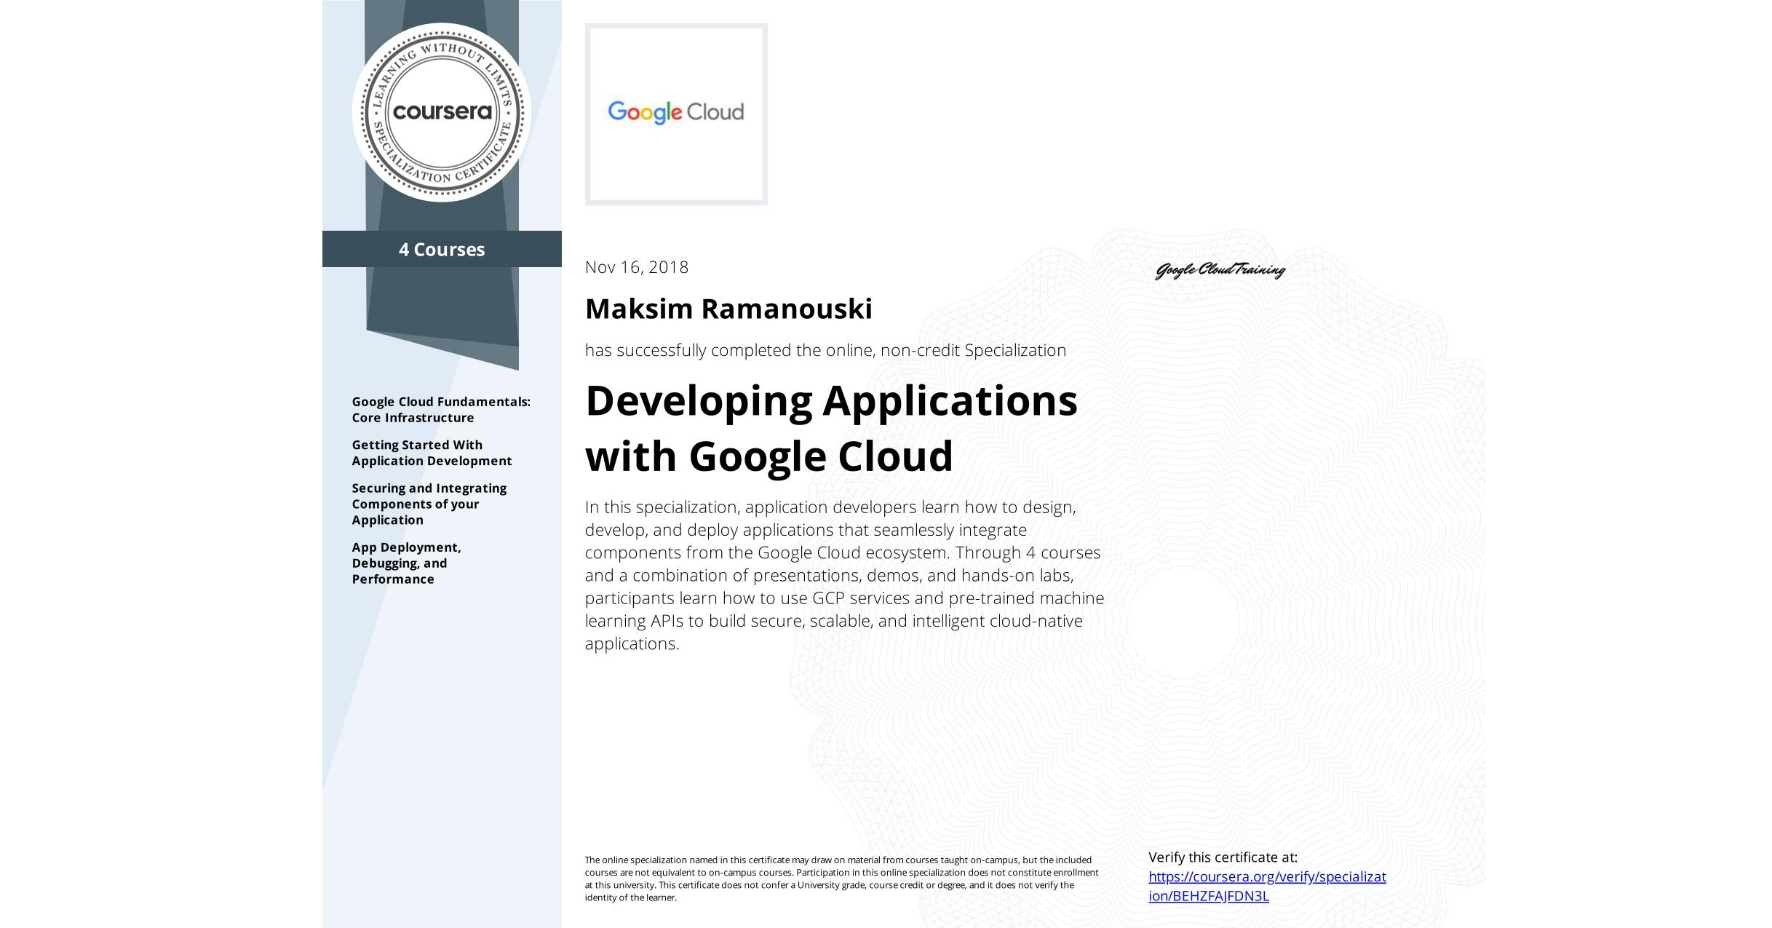 View certificate for Maksim Ramanouski, Developing Applications with Google Cloud Platform, offered through Coursera. In this specialization, application developers learn how to design, develop, and deploy applications that seamlessly integrate components from the Google Cloud ecosystem. Through 4 courses and a combination of presentations, demos, and hands-on labs, participants learn how to use GCP services and pre-trained machine learning APIs to build secure, scalable, and intelligent cloud-native applications.